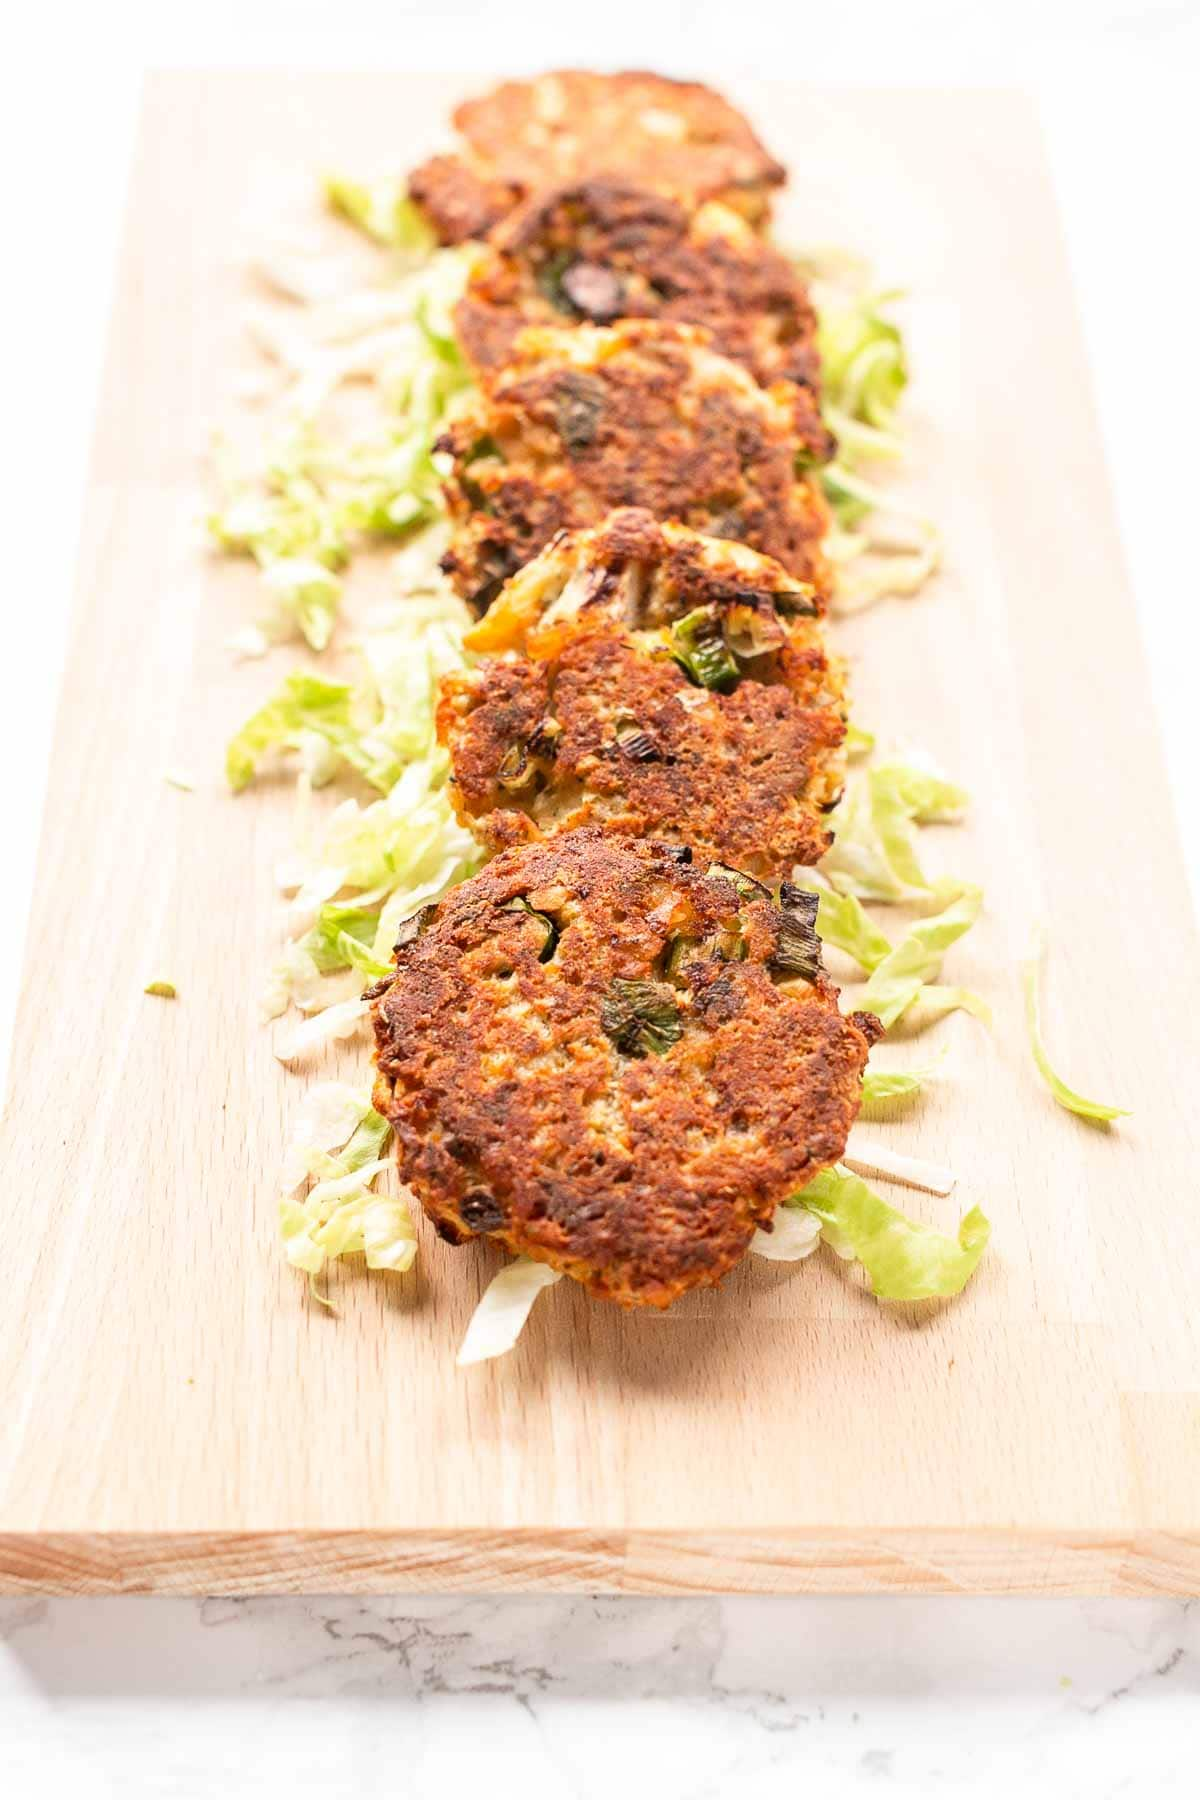 These canned salmon cakes are amazing. Serve hot or cold, with a dip. You can easily serve these with a full meal as well or big sized as a burger! Visit fastfoodbistro.com for the full recipe #fastfoodbistro #appetizer #salmoncakes #salmonpatties #salmoncakepatties #cannedsalmon